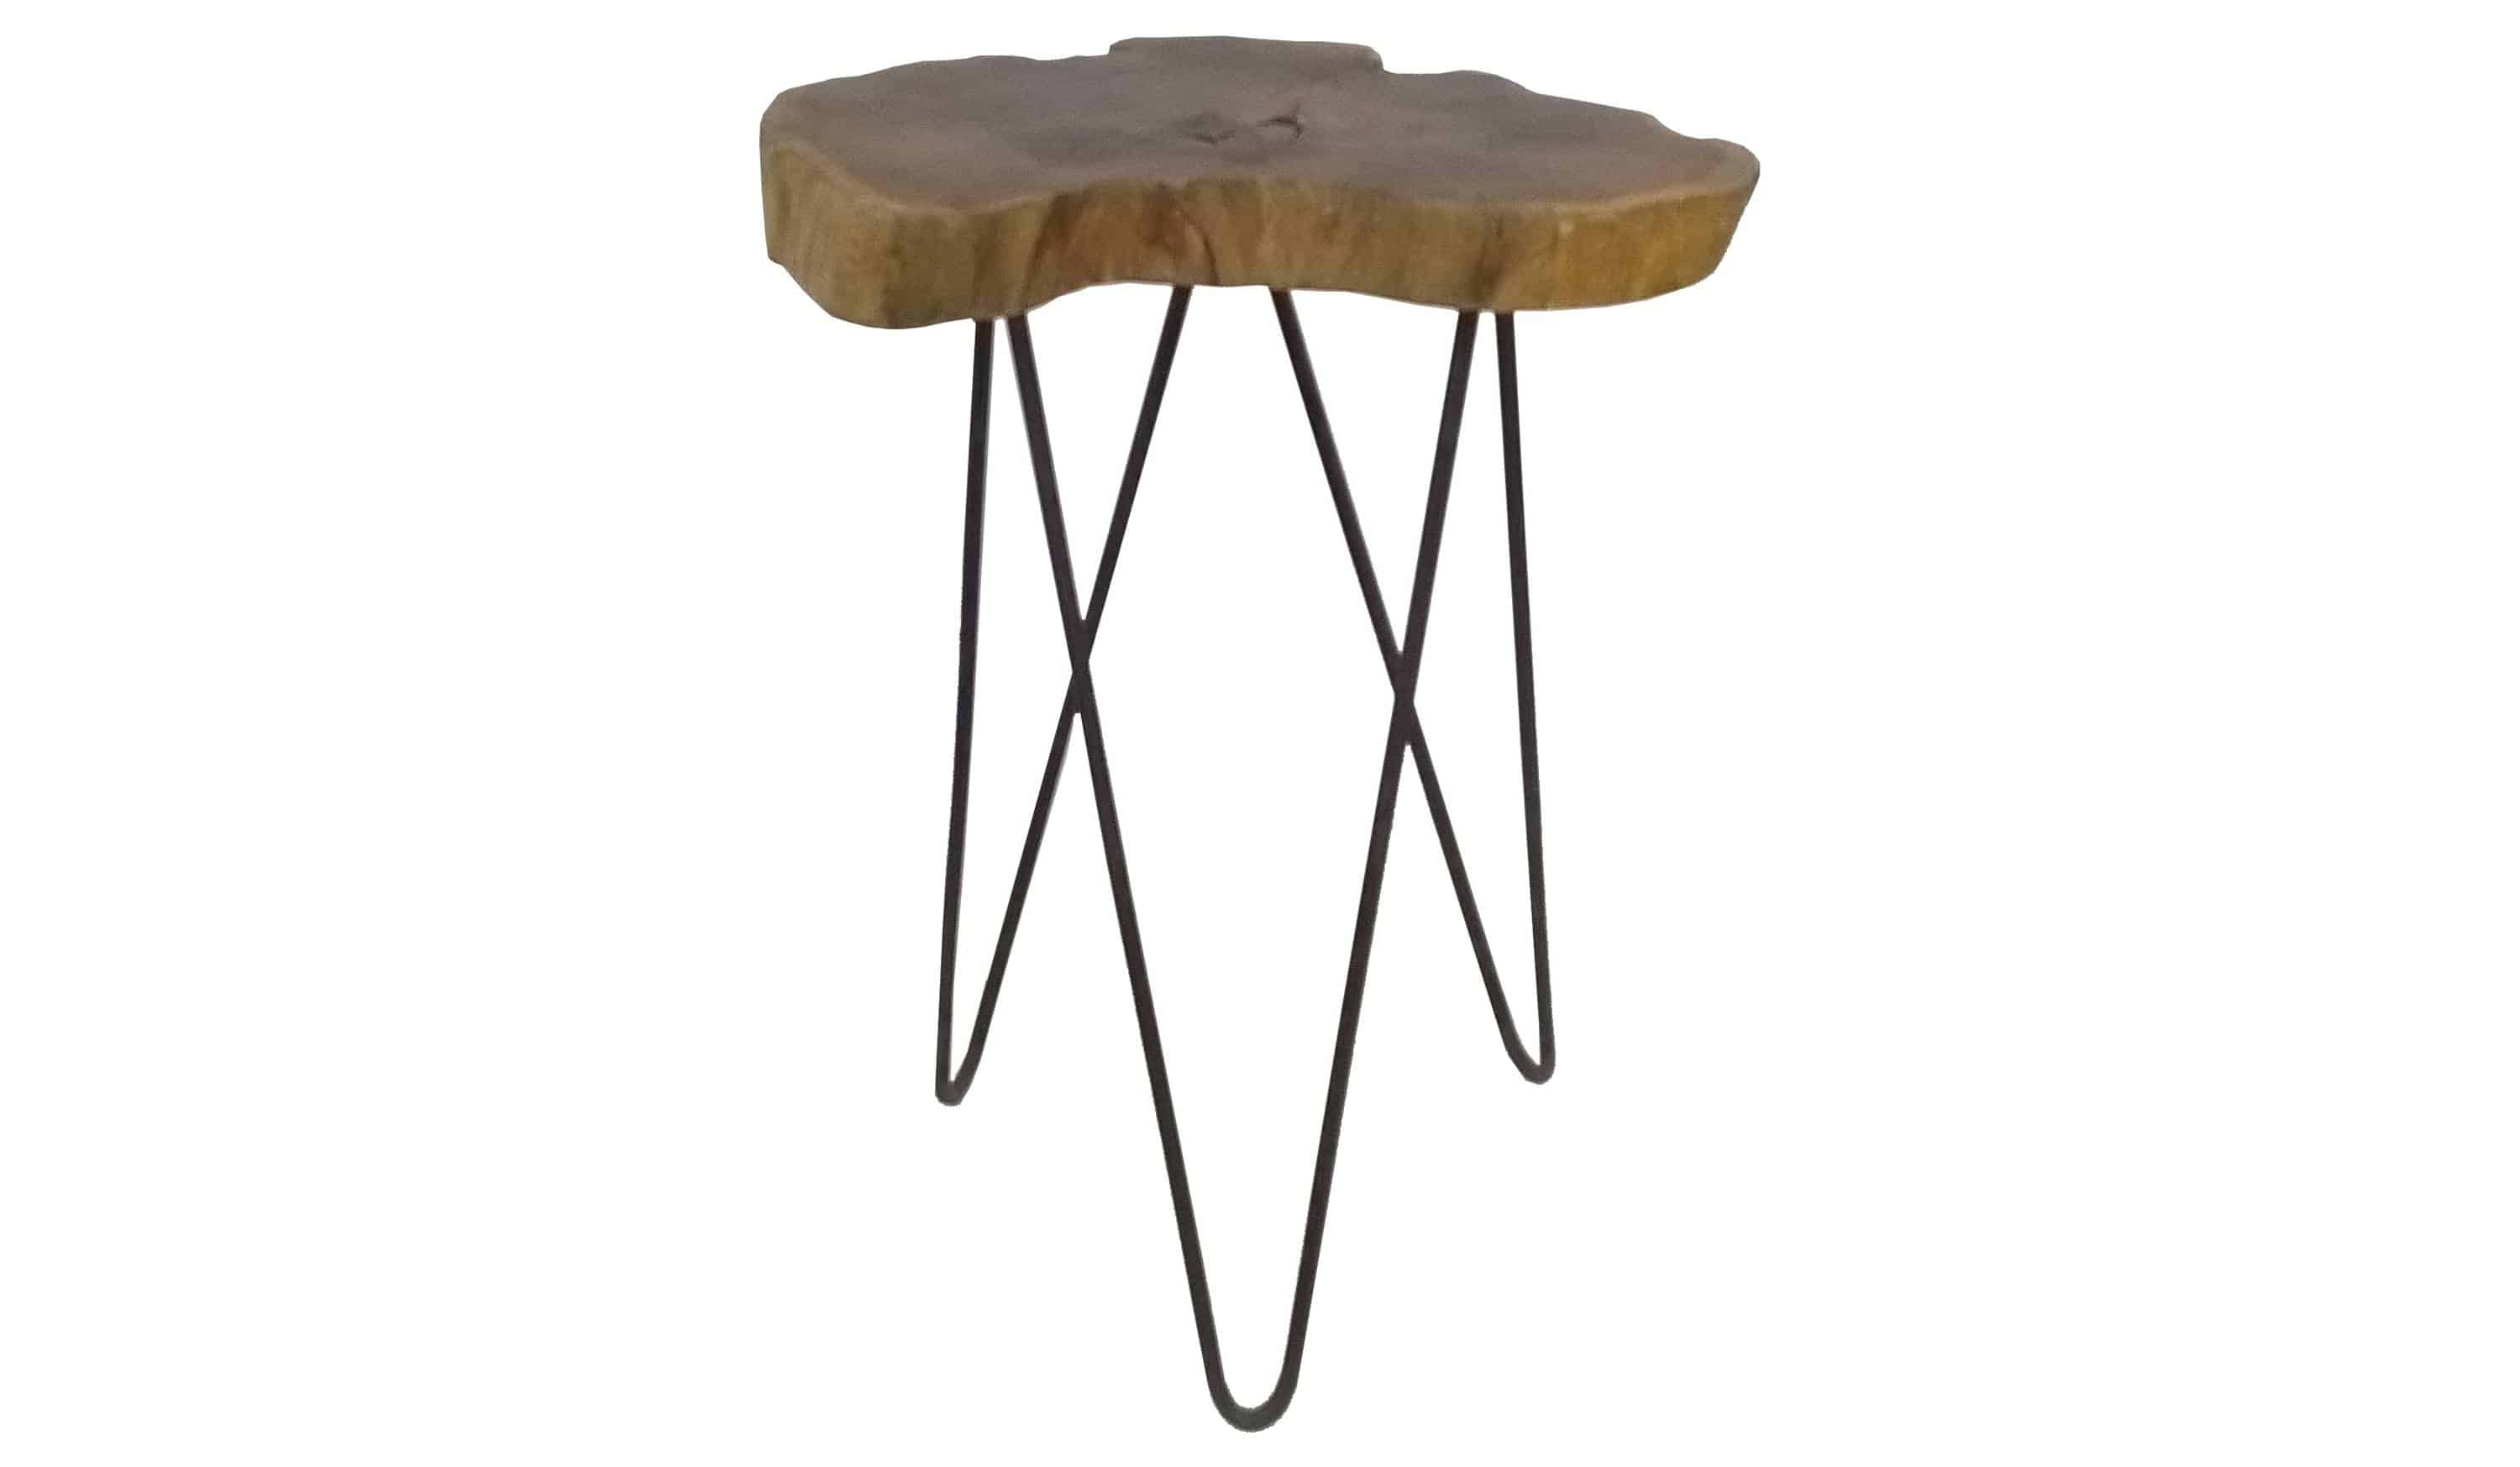 A close up of a side table